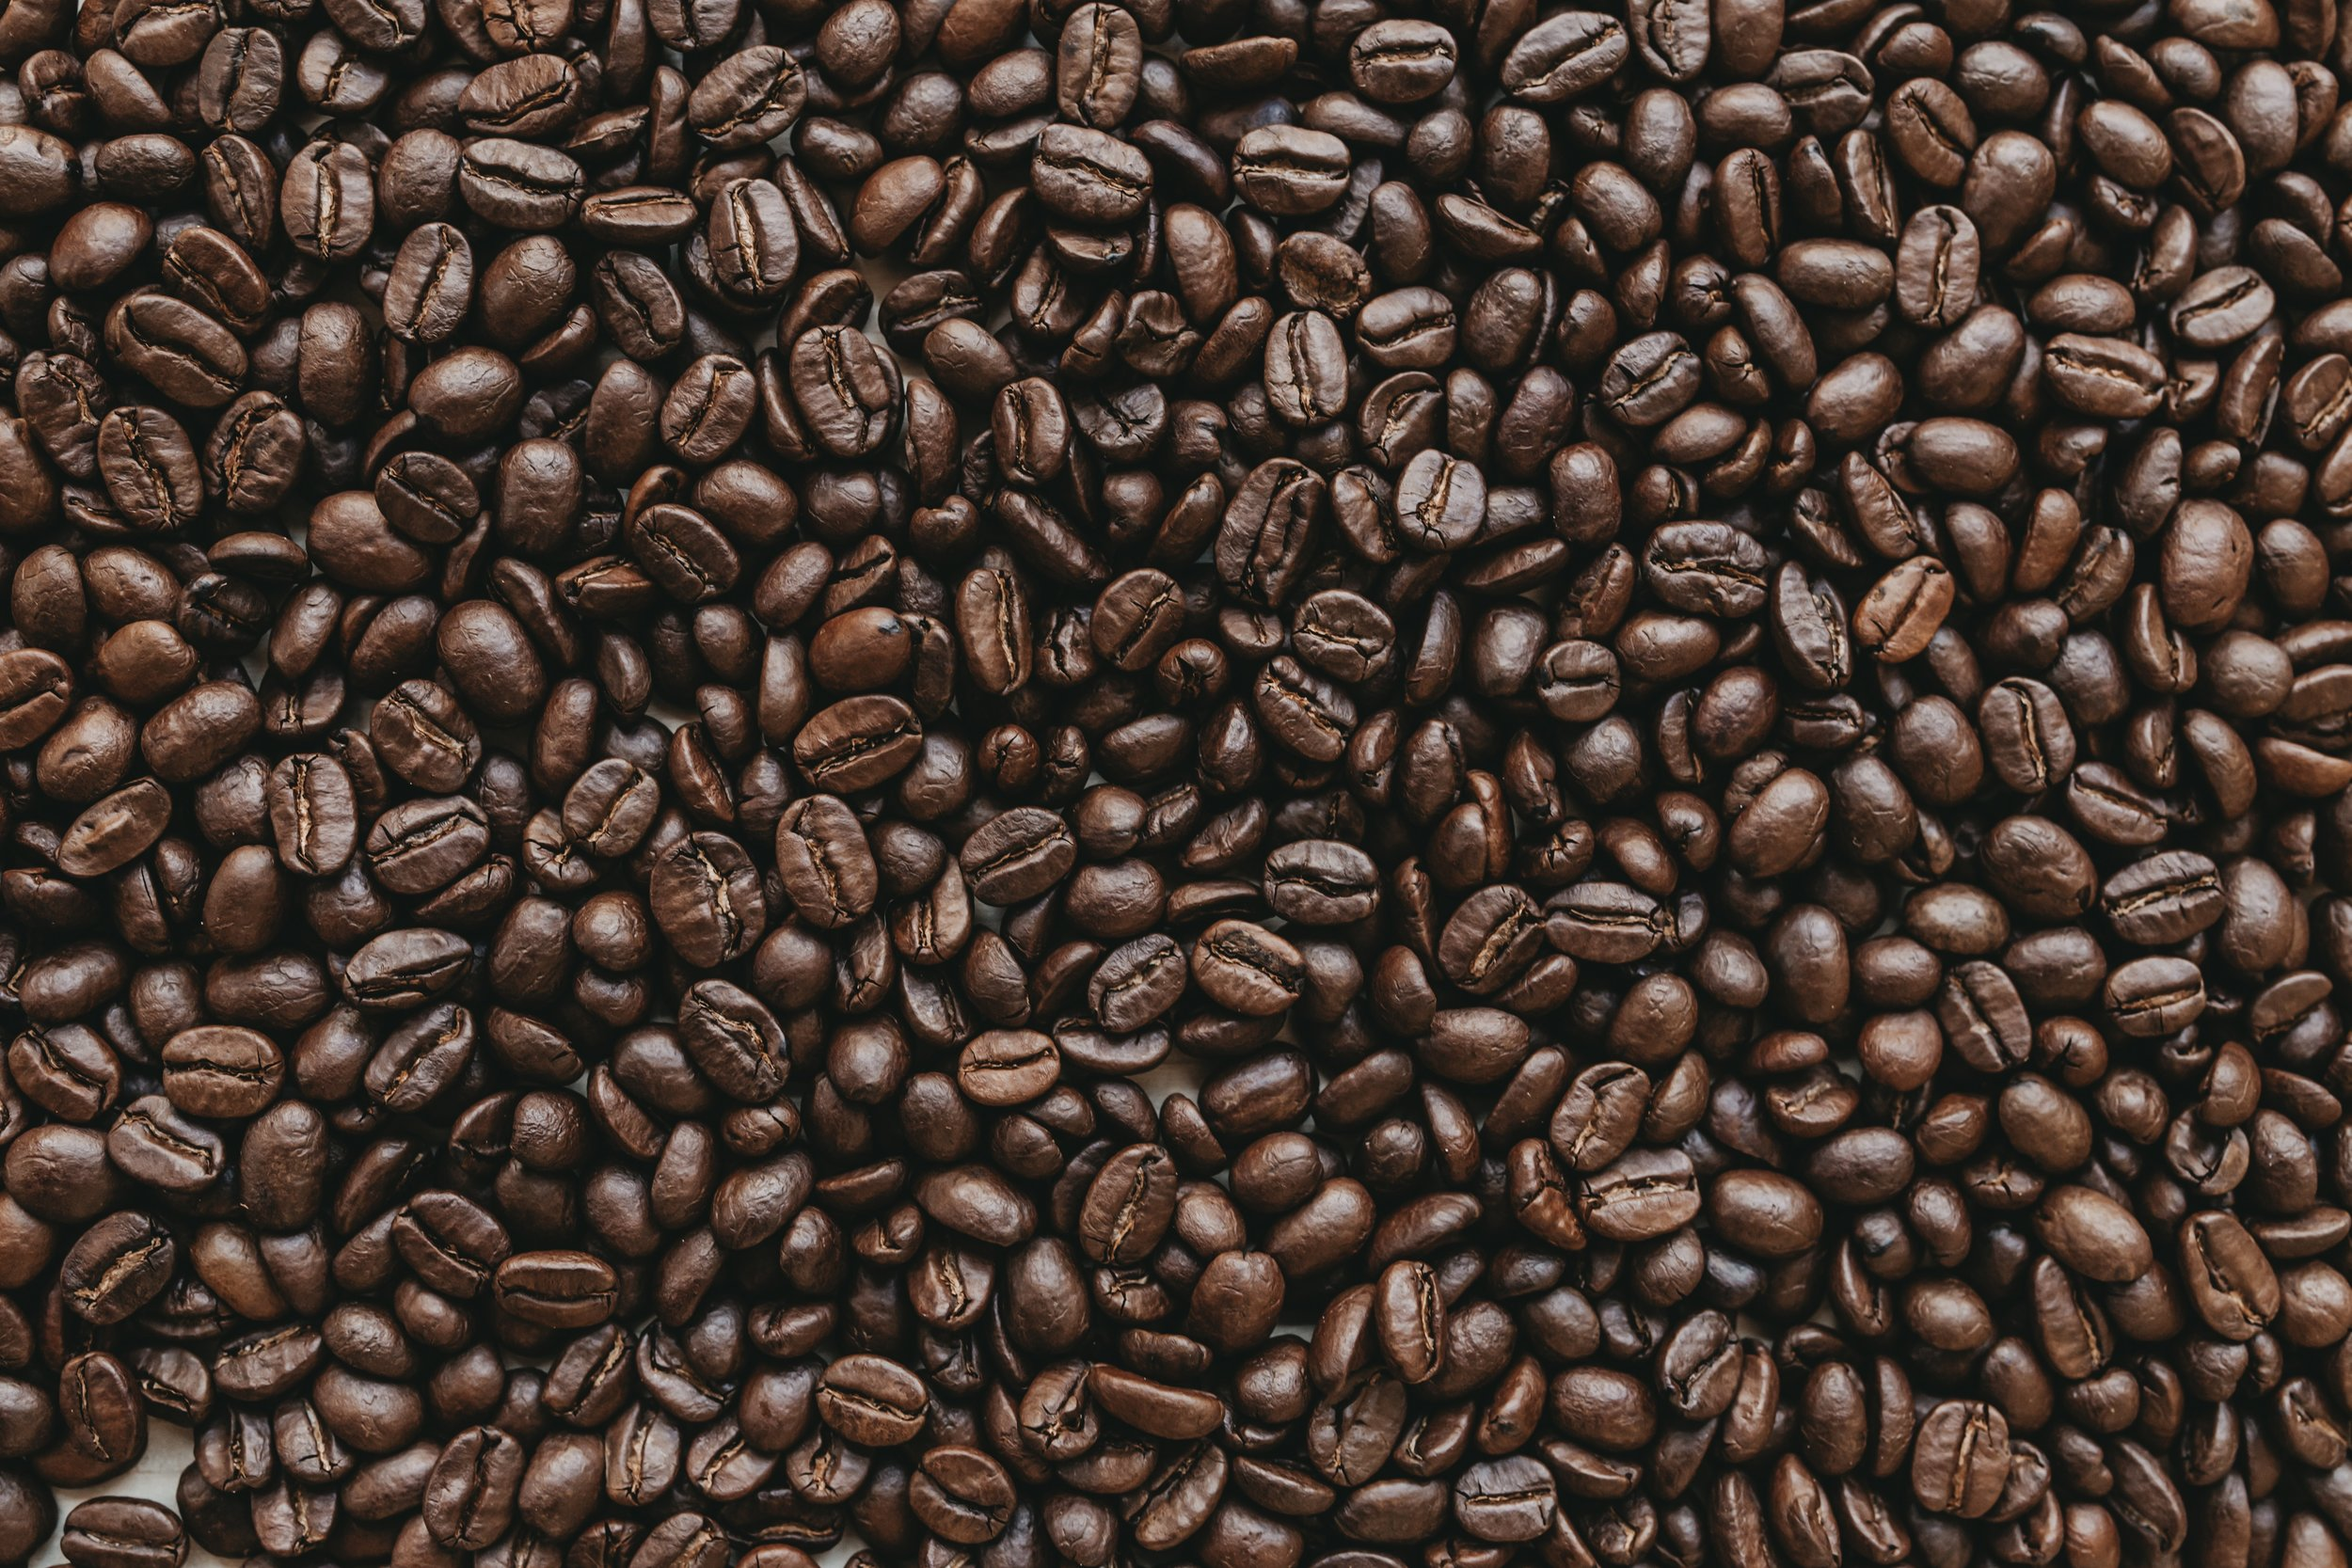 Coffee is one of the most commonly used sources of caffeine, with 1 cup of black coffee containing ~95-165 mg of caffeine.